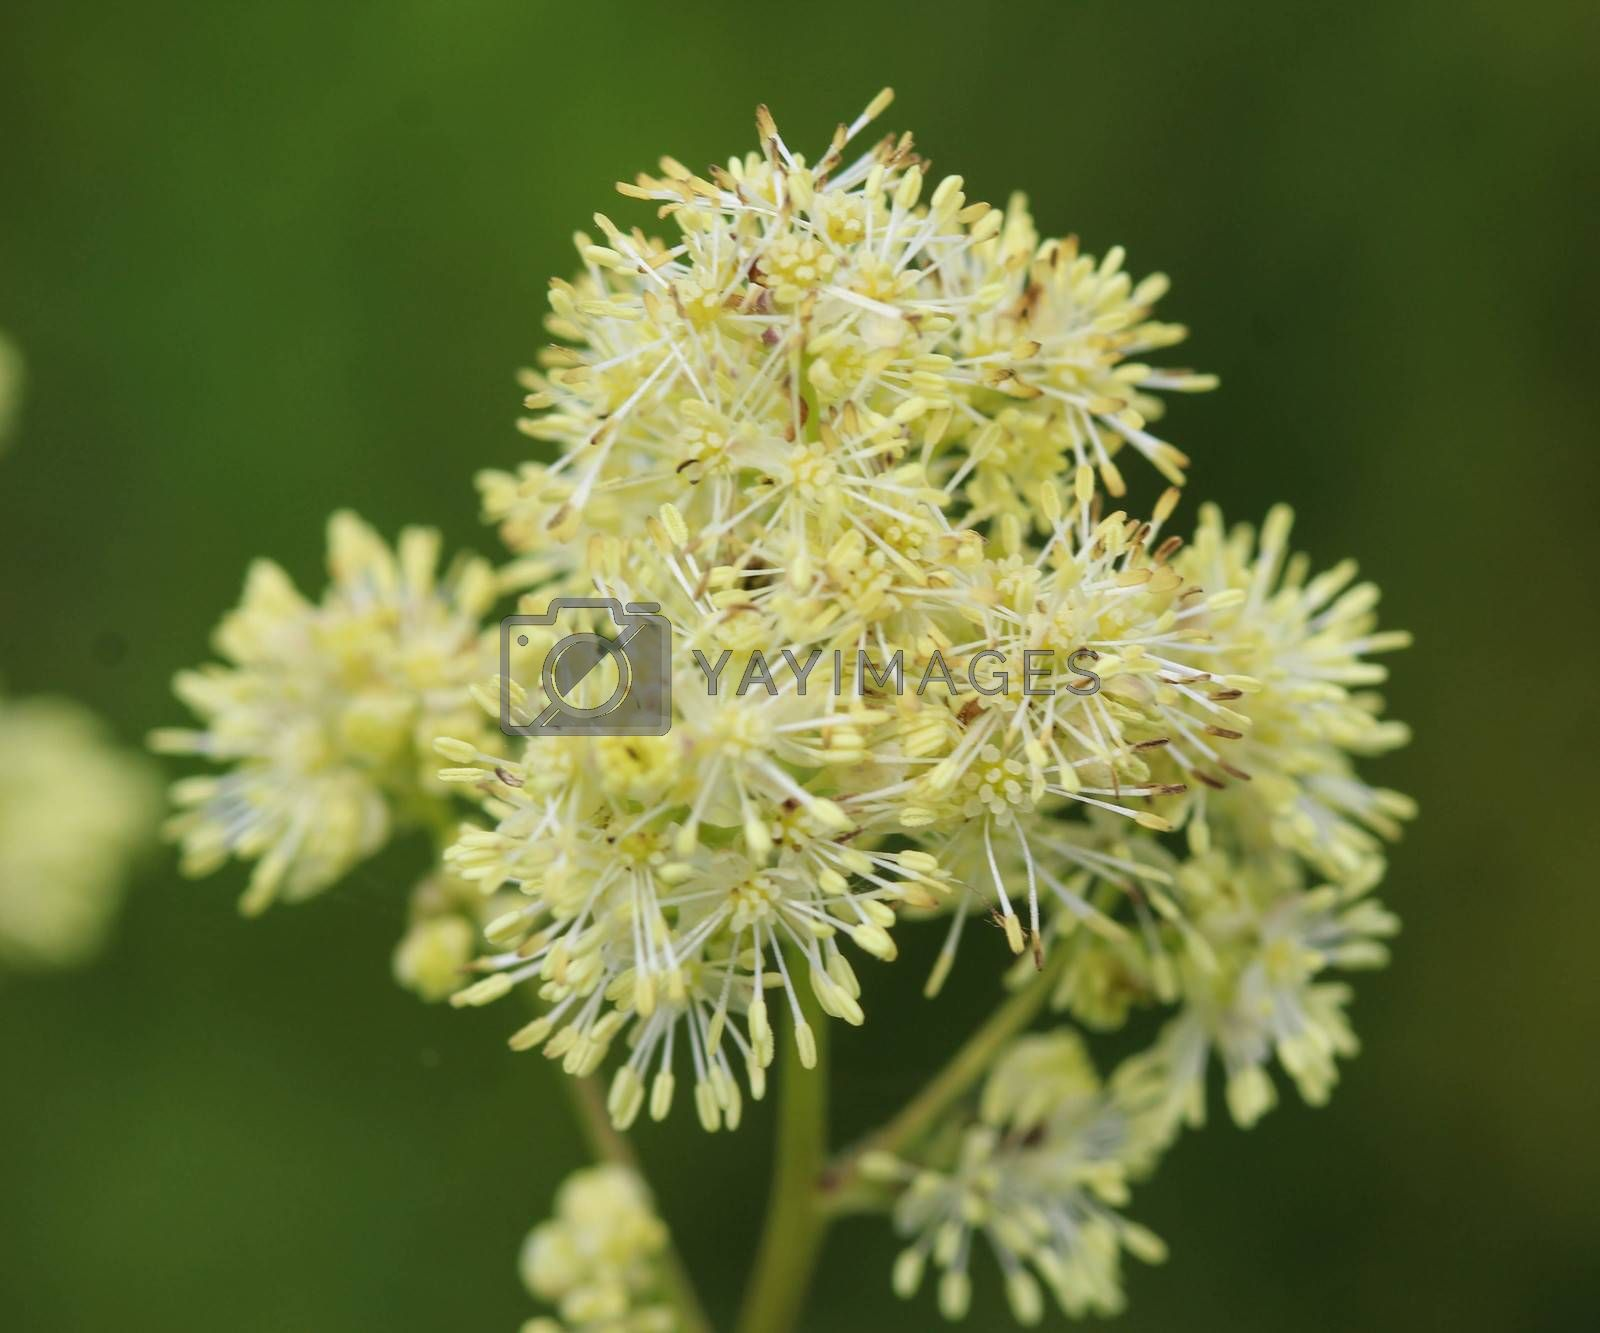 Royalty free image of Thalictrum flavum, known by the common names common meadow-rue, and yellow meadow-rue. Blooming in spring by michaelmeijer